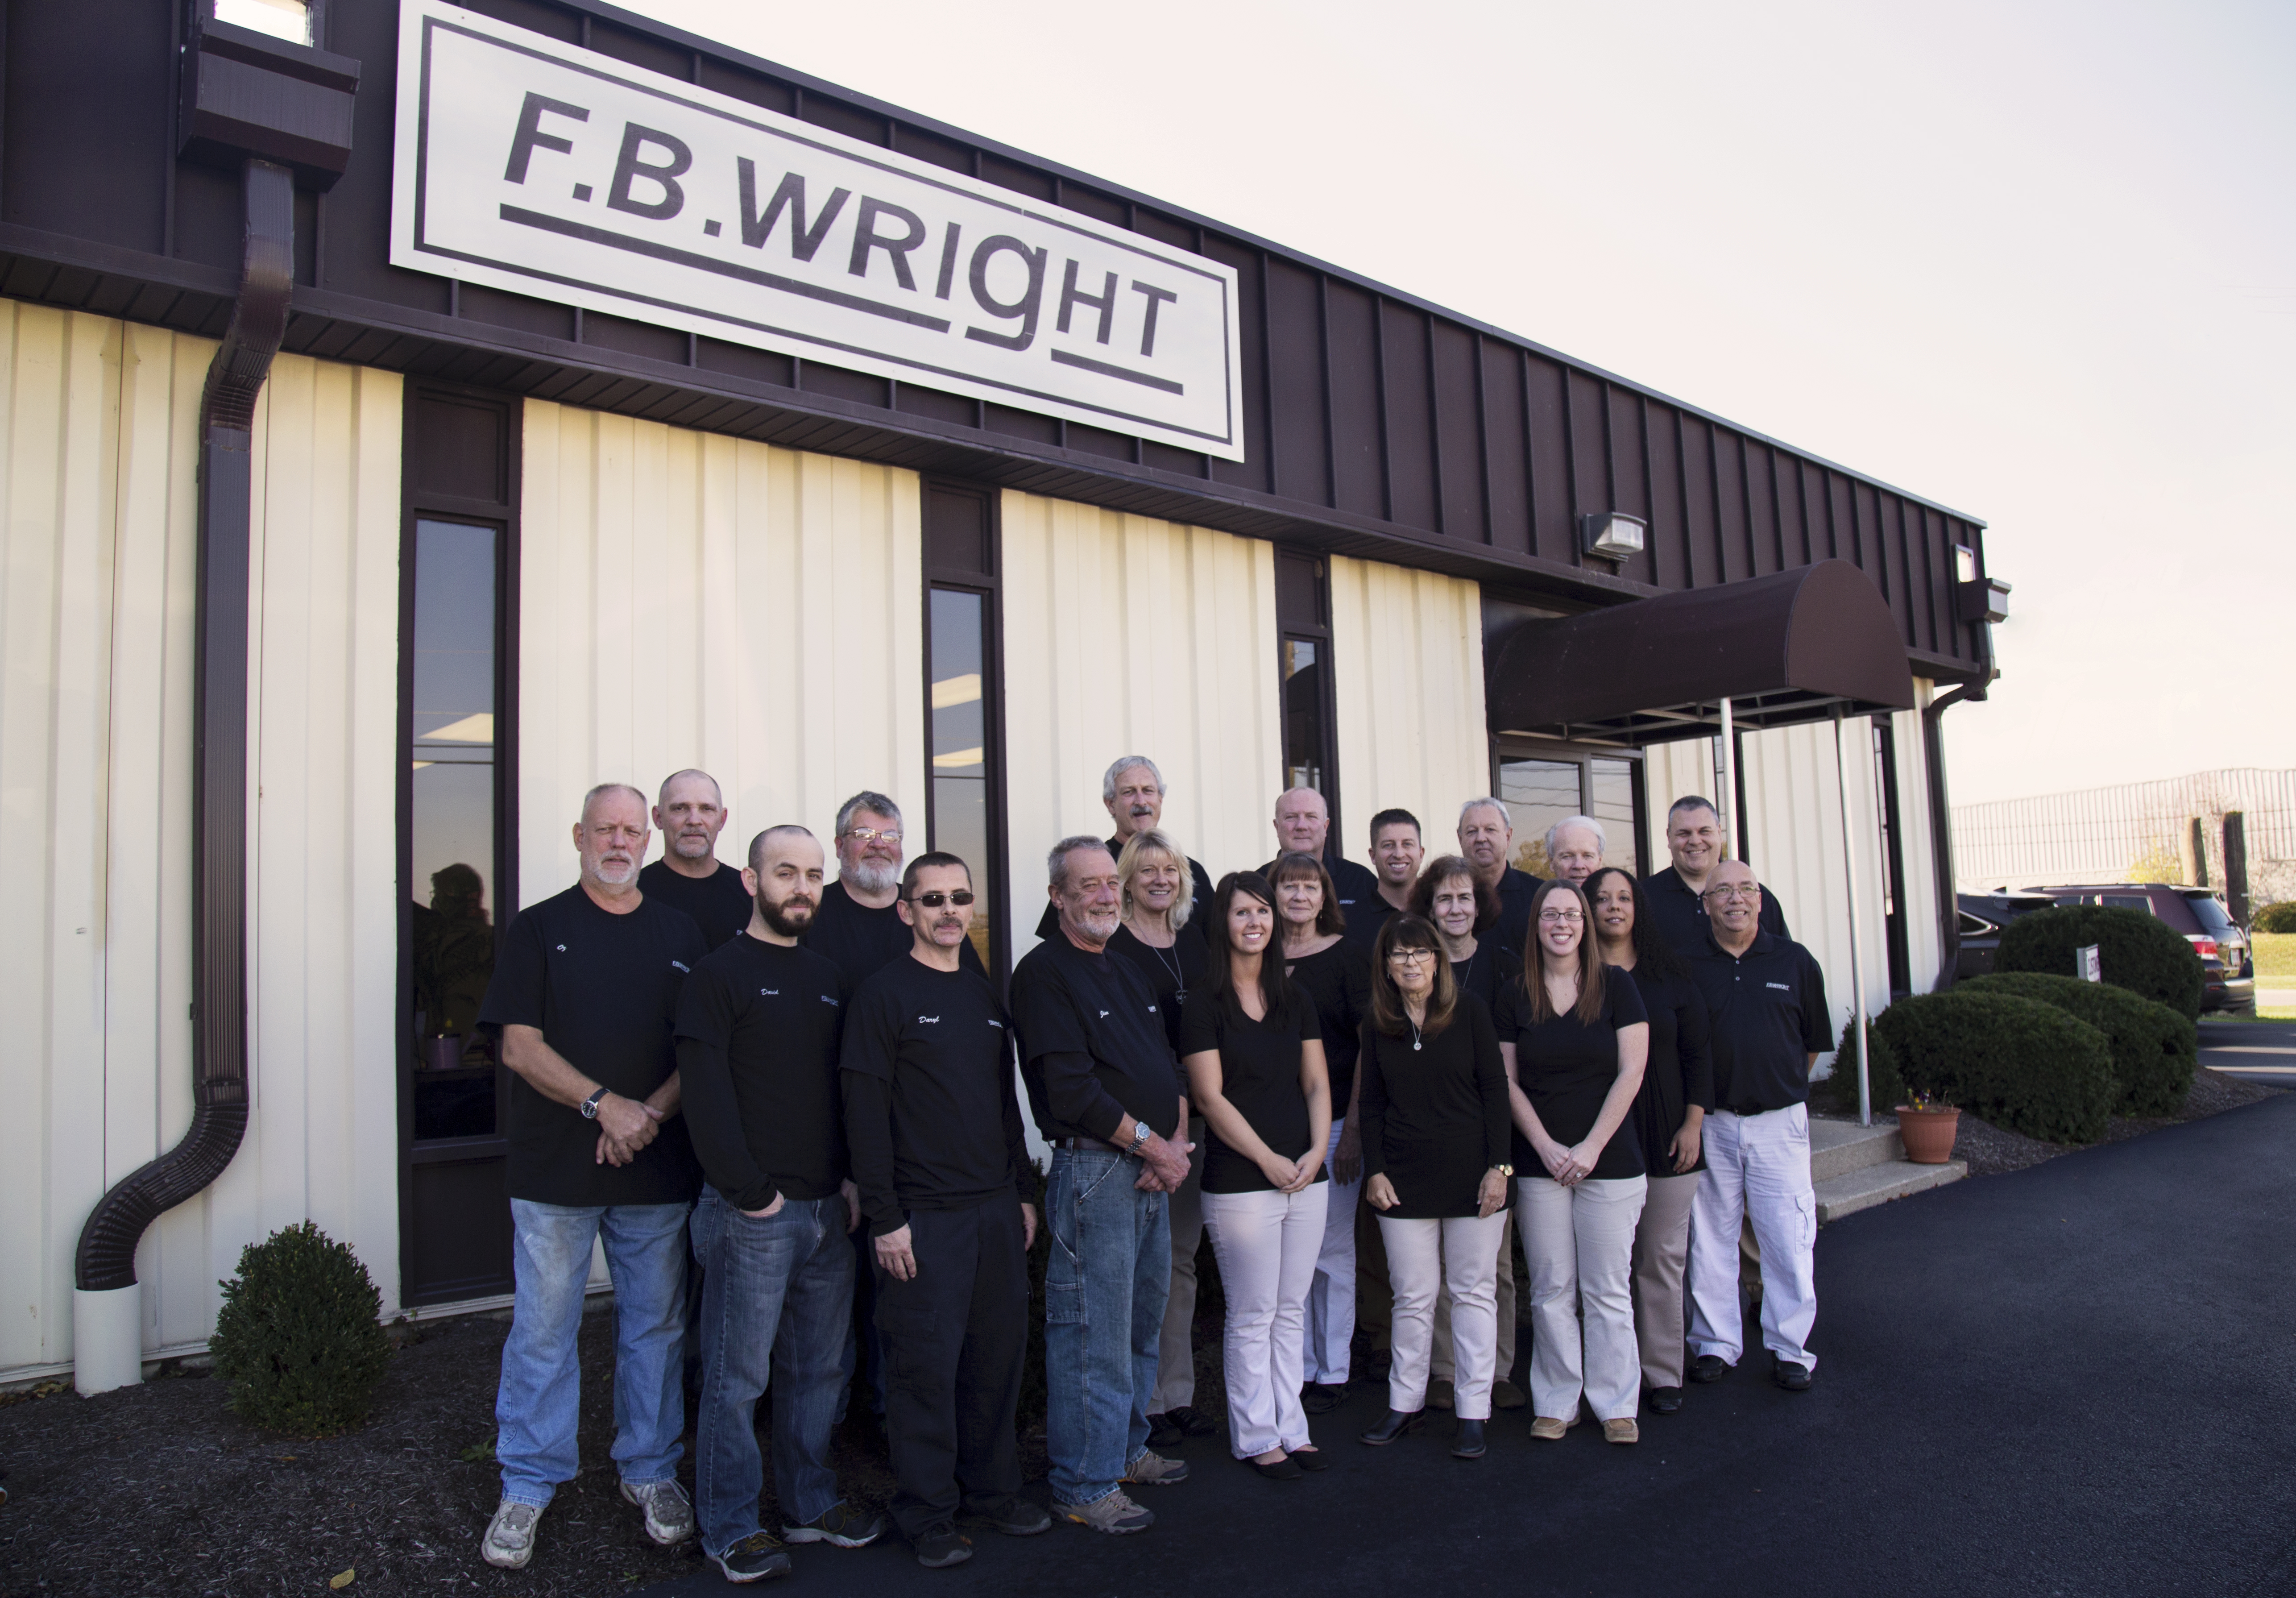 FB Wright Group Photo